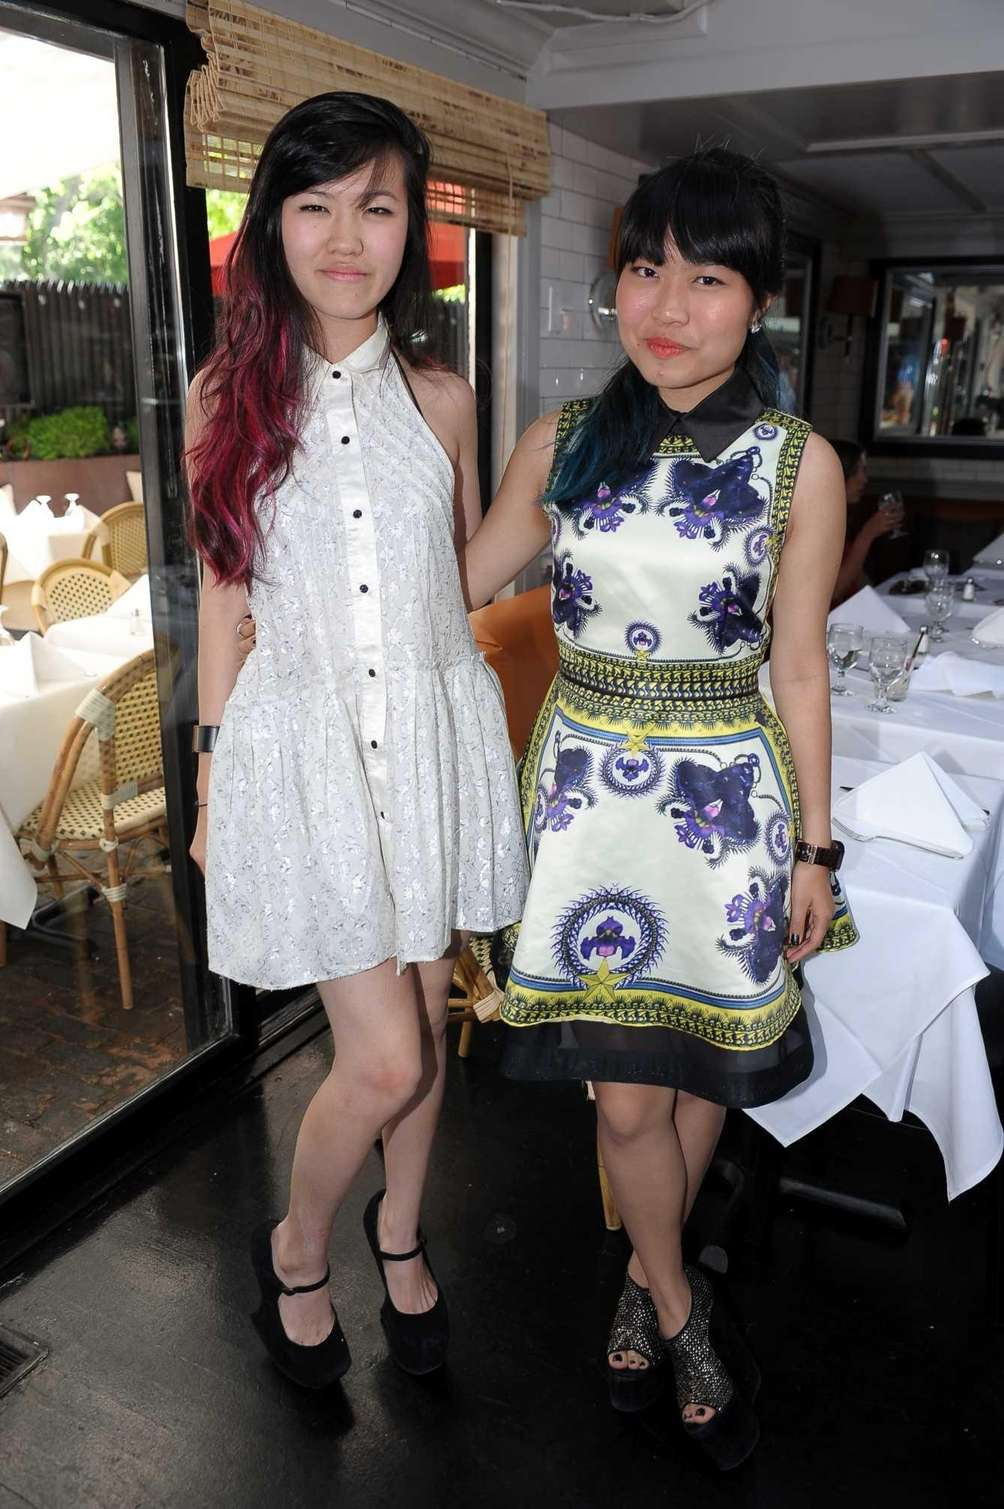 Rachel and Nicole Effendy at the Beaumarchais Champaign